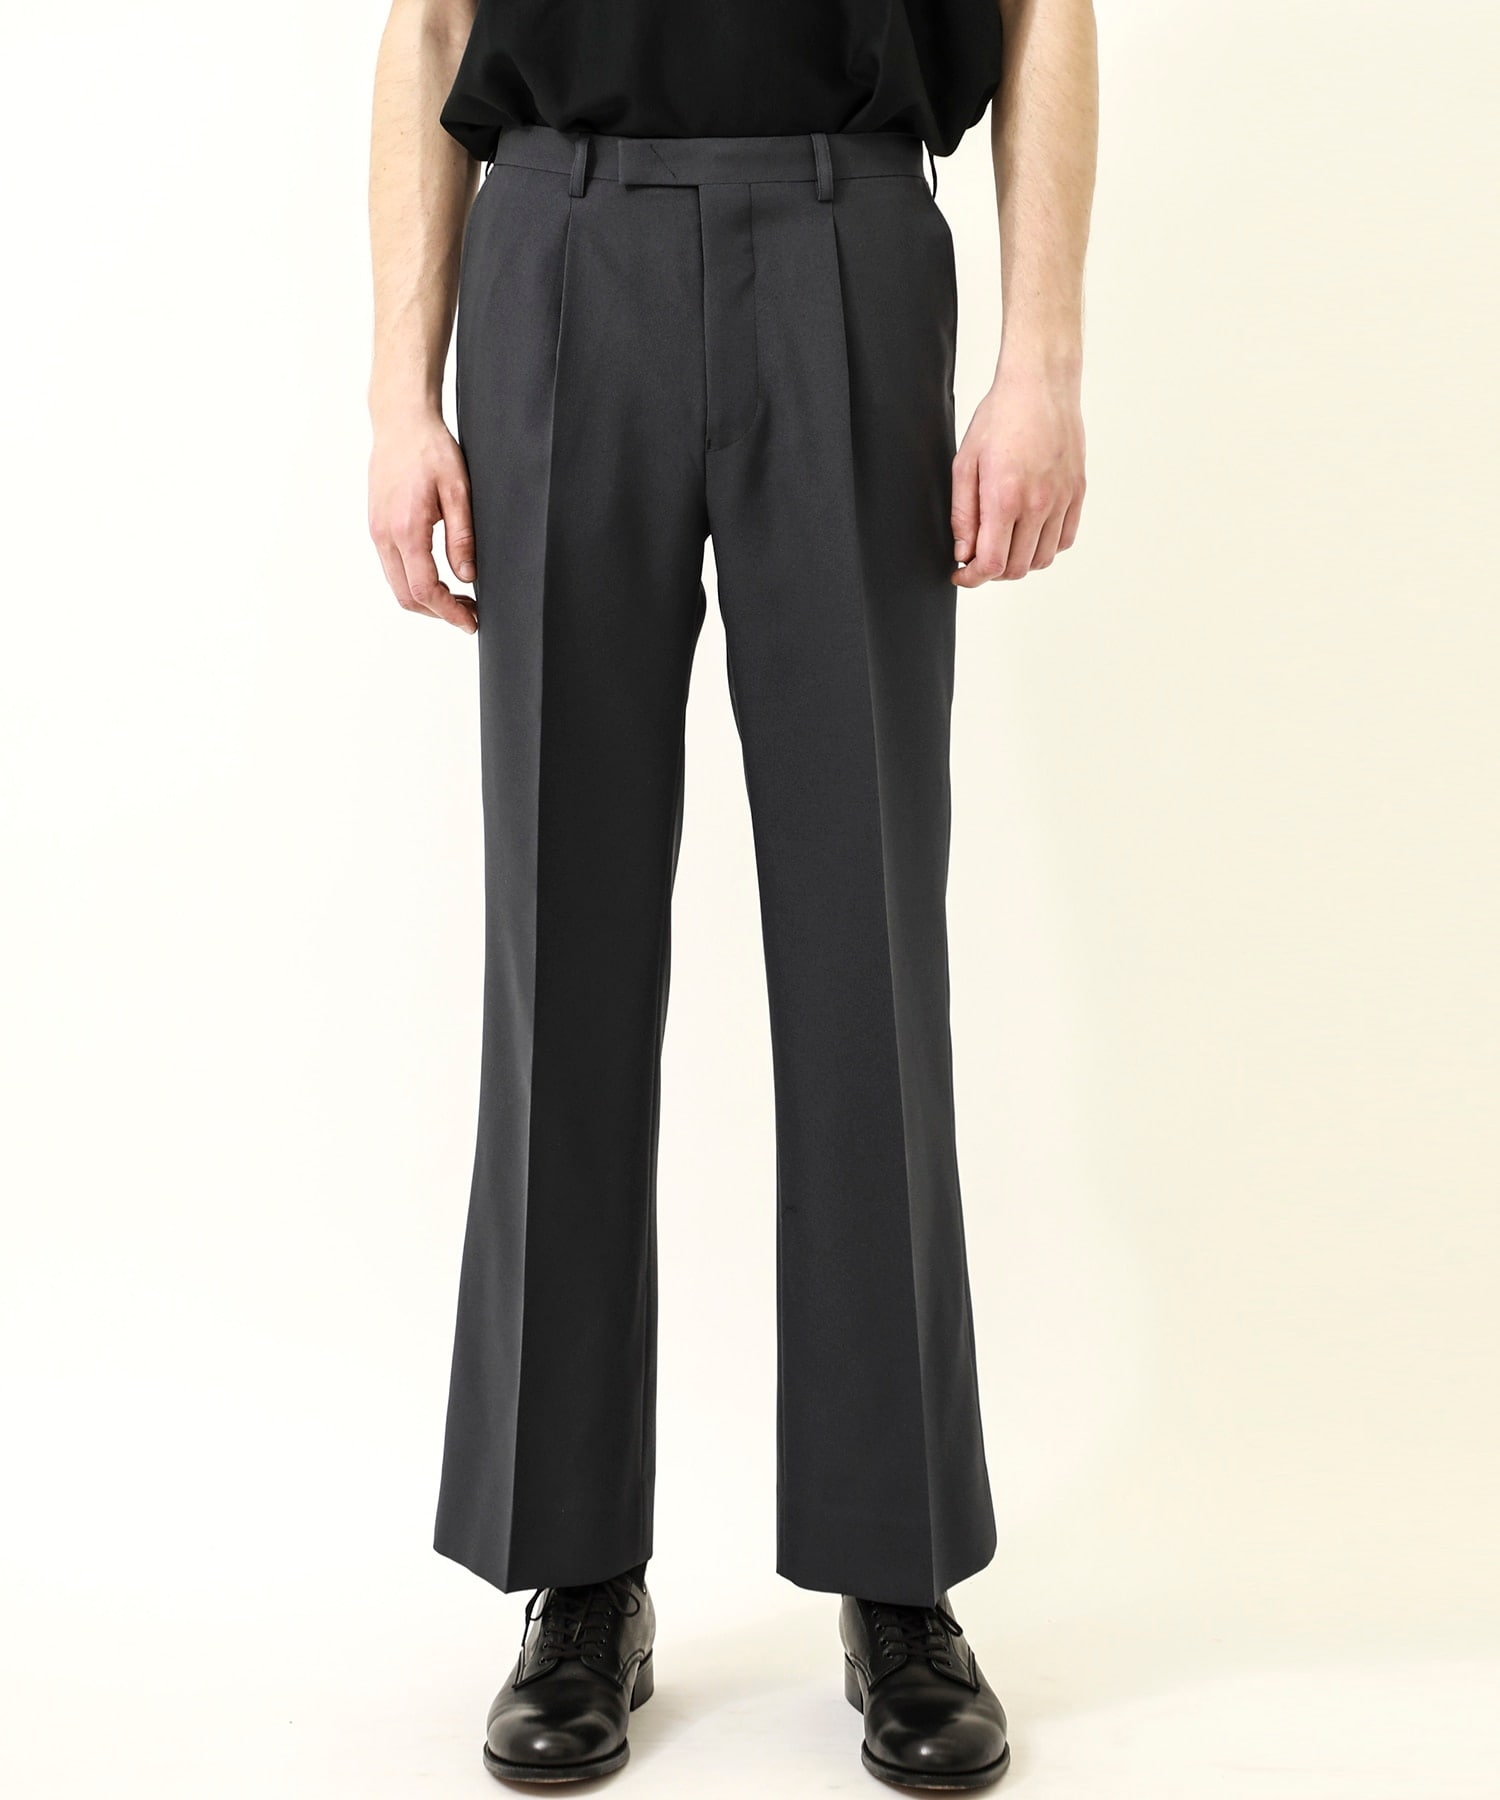 POLY FLARE PANTS LAD MUSICIAN